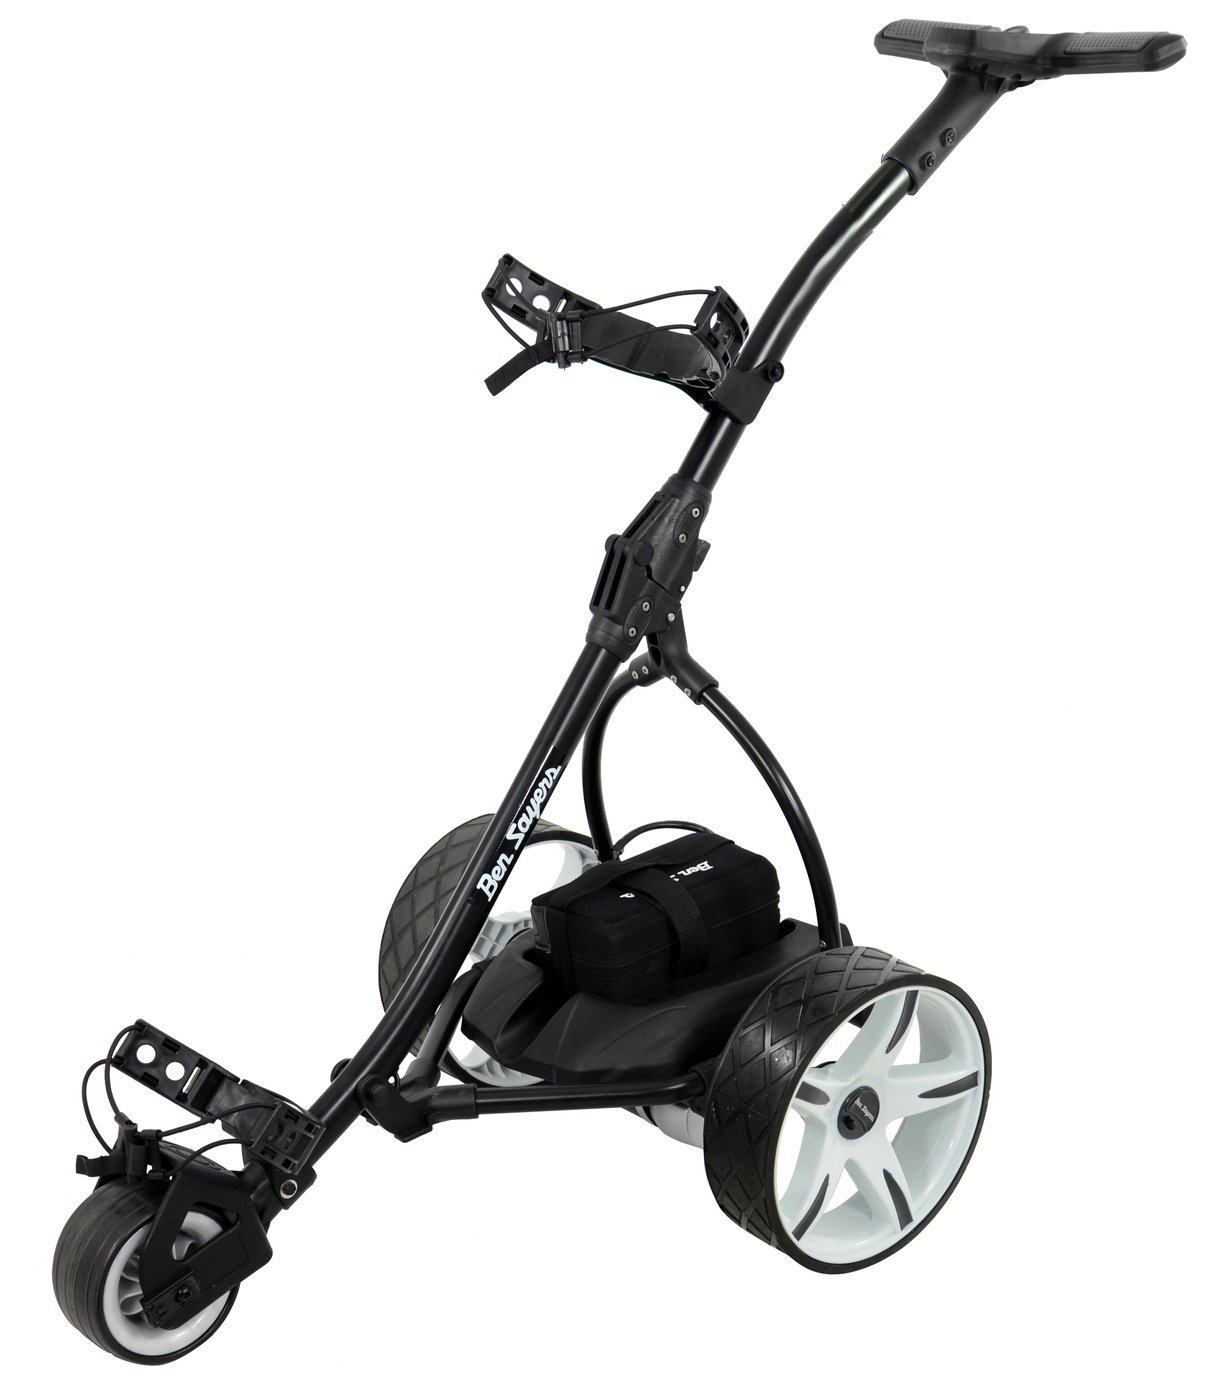 Image of Ben Sayers Lithium Battery Electric Trolley